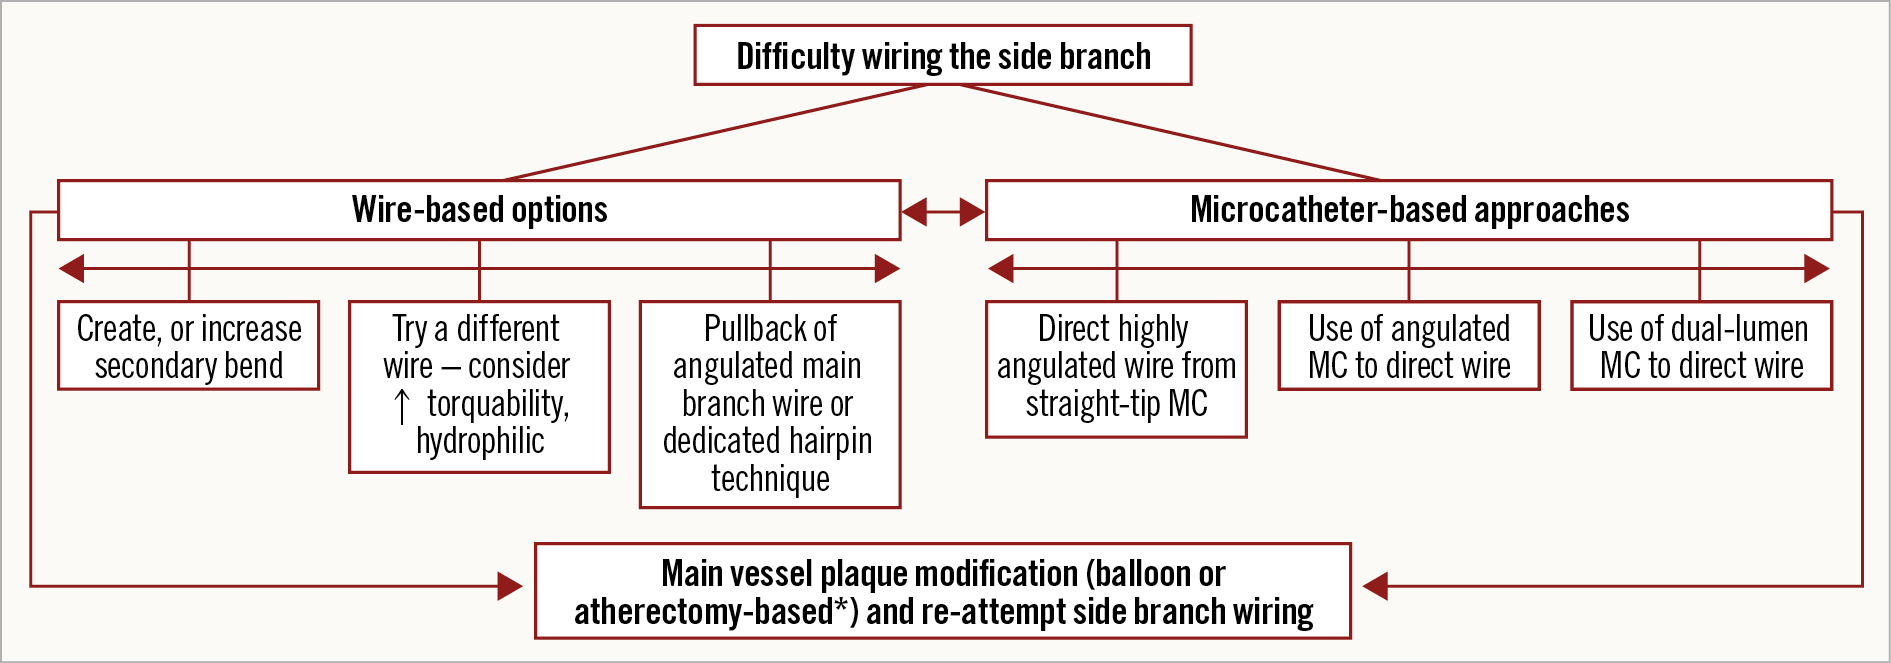 Figure 3. Algorithm for approaching a side branch which is difficult to wire. *atherectomy only if no new stents yet placed. MC: microcatheter